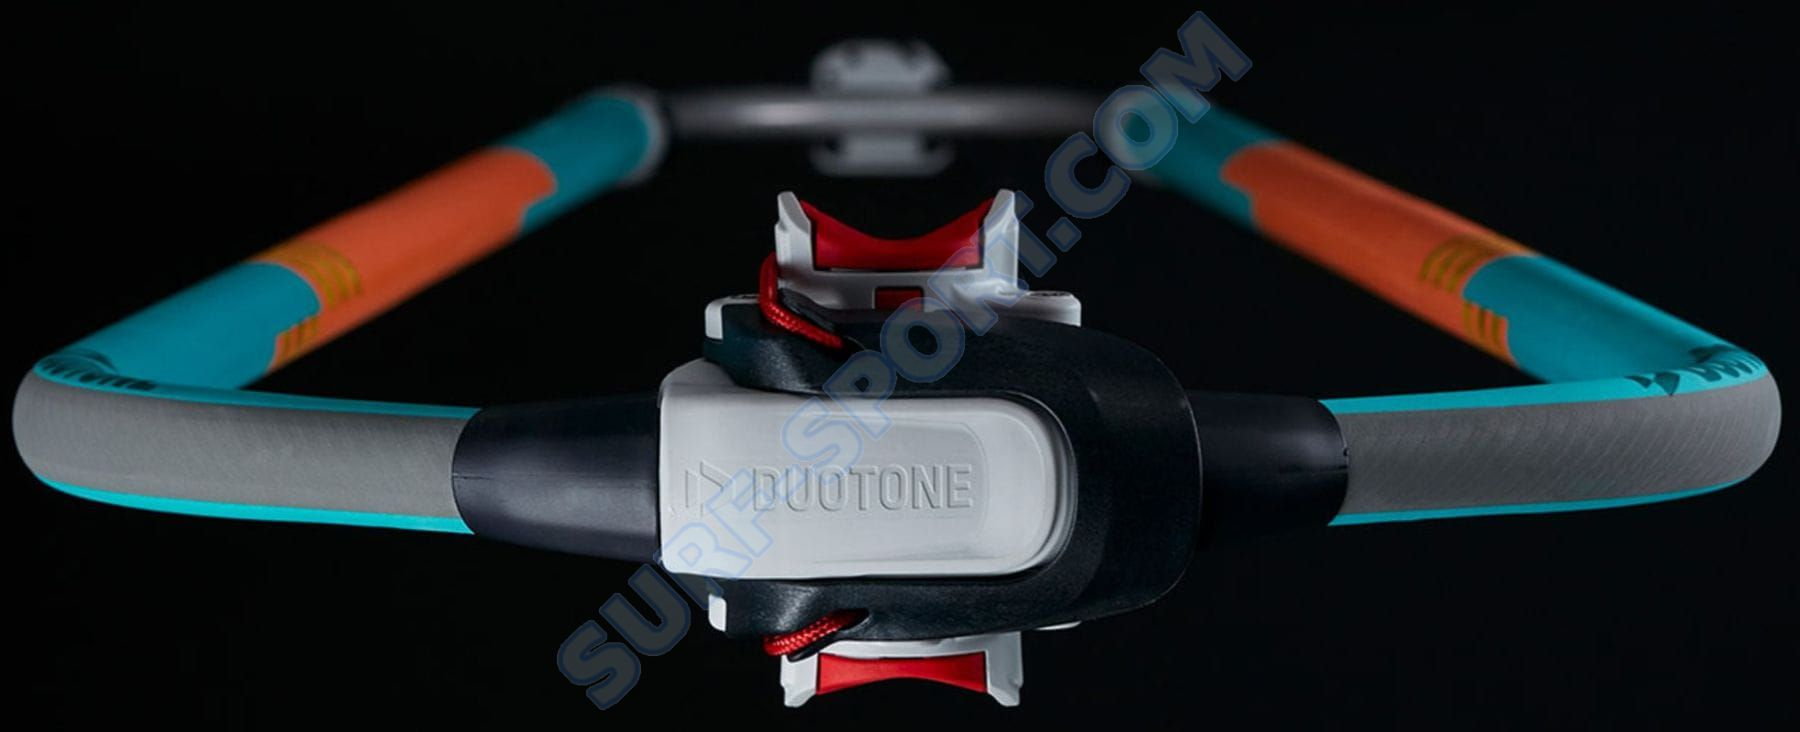 Bom-Duotone-Silver-Series-HD-2021-turquoise-orange.jpg